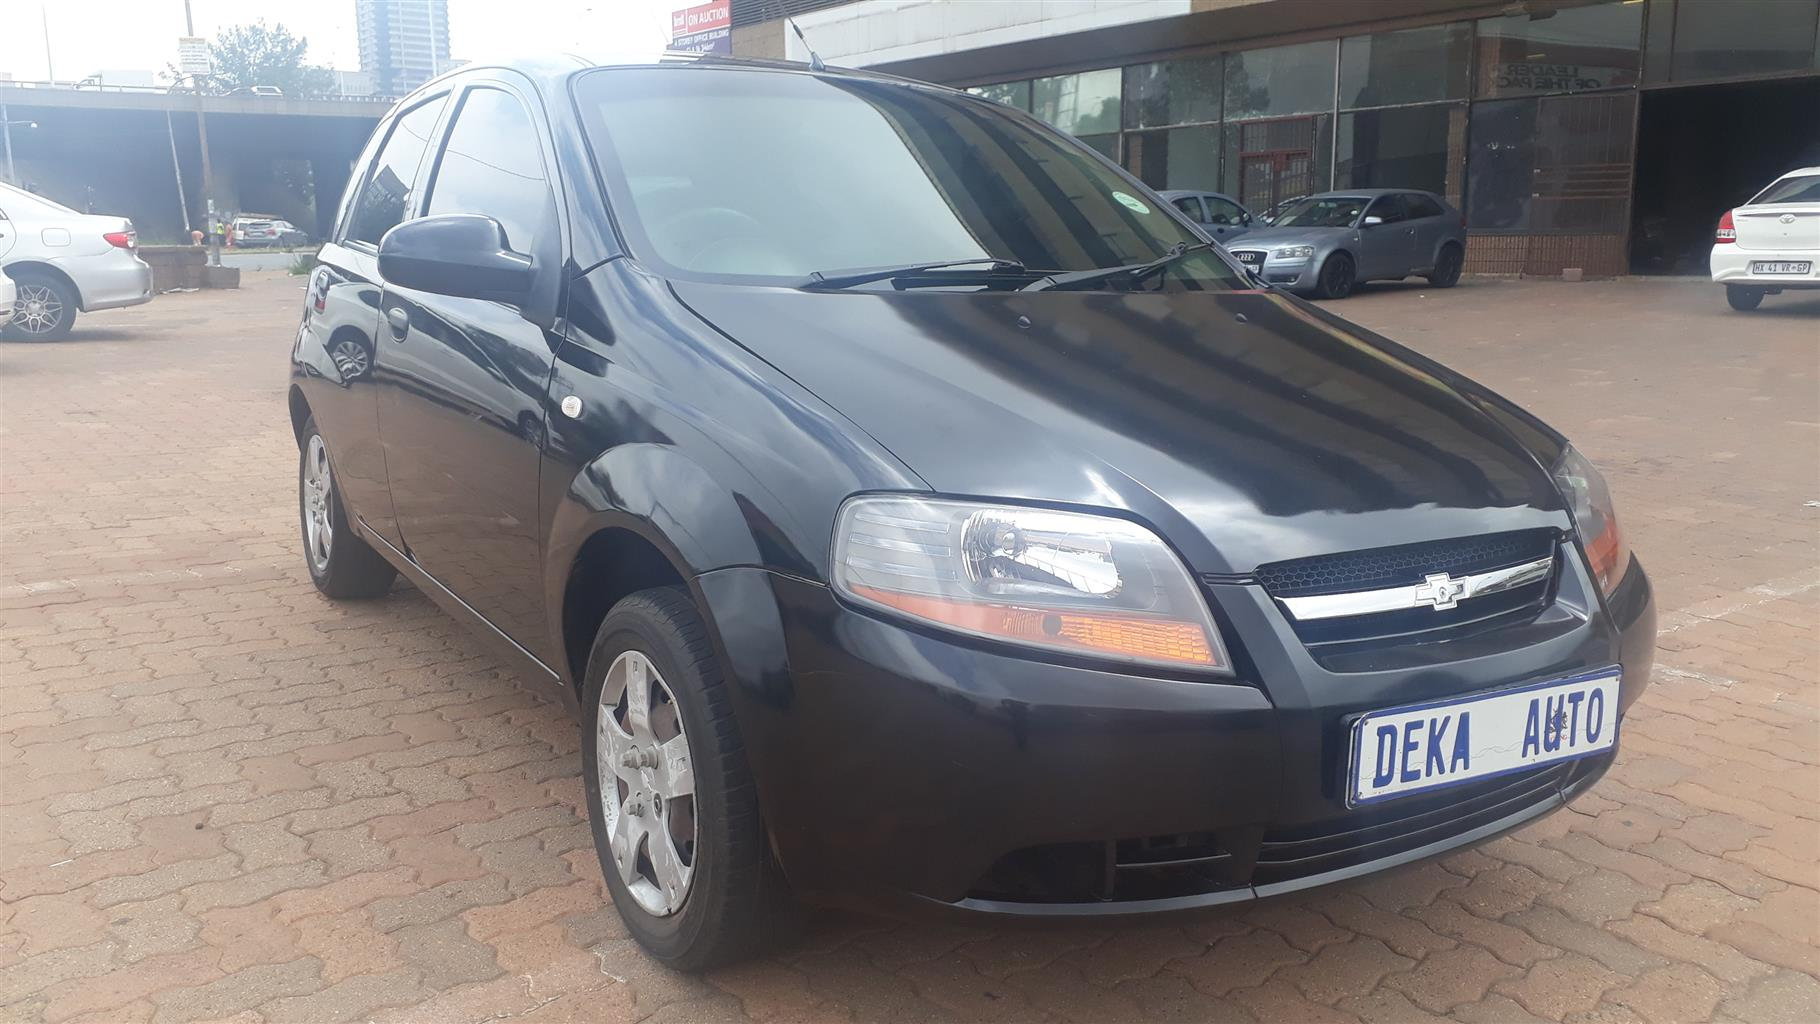 2006 Chevrolet Aveo 1.6 L hatch